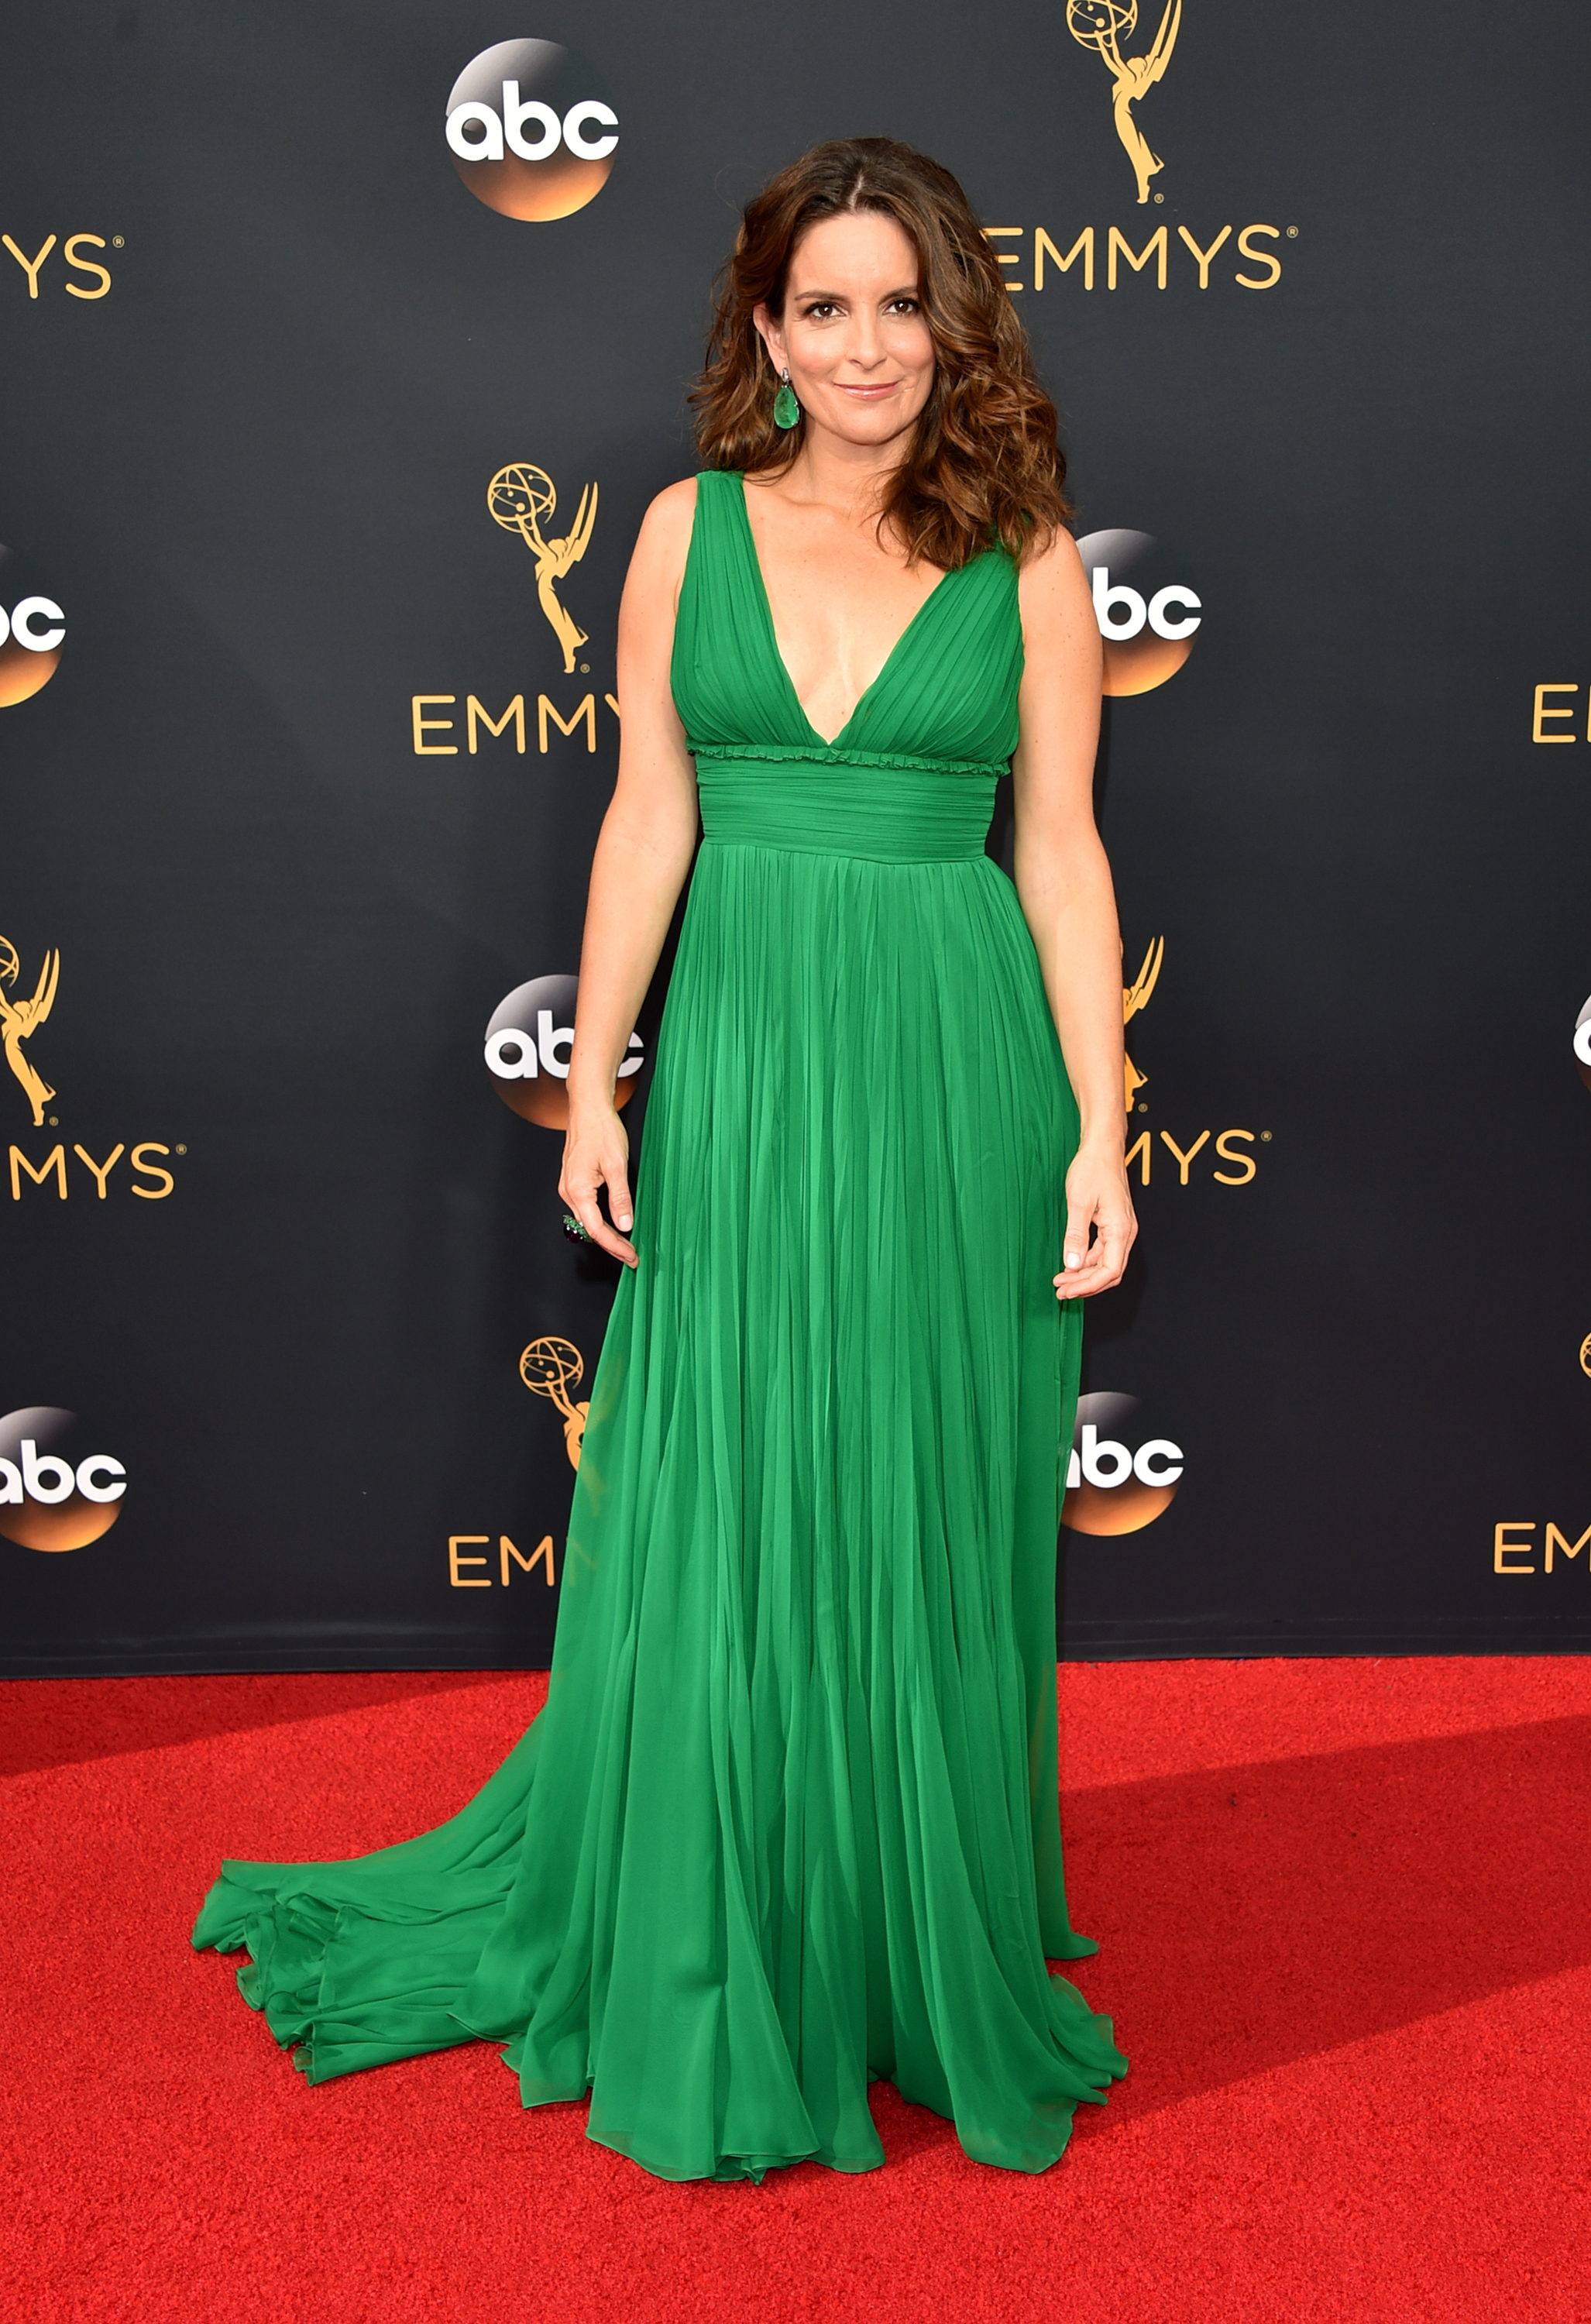 Tina Fey arrives at the 68th Annual Primetime Emmy Awards at Microsoft Theater on Sept. 18, 2016 in Los Angeles.